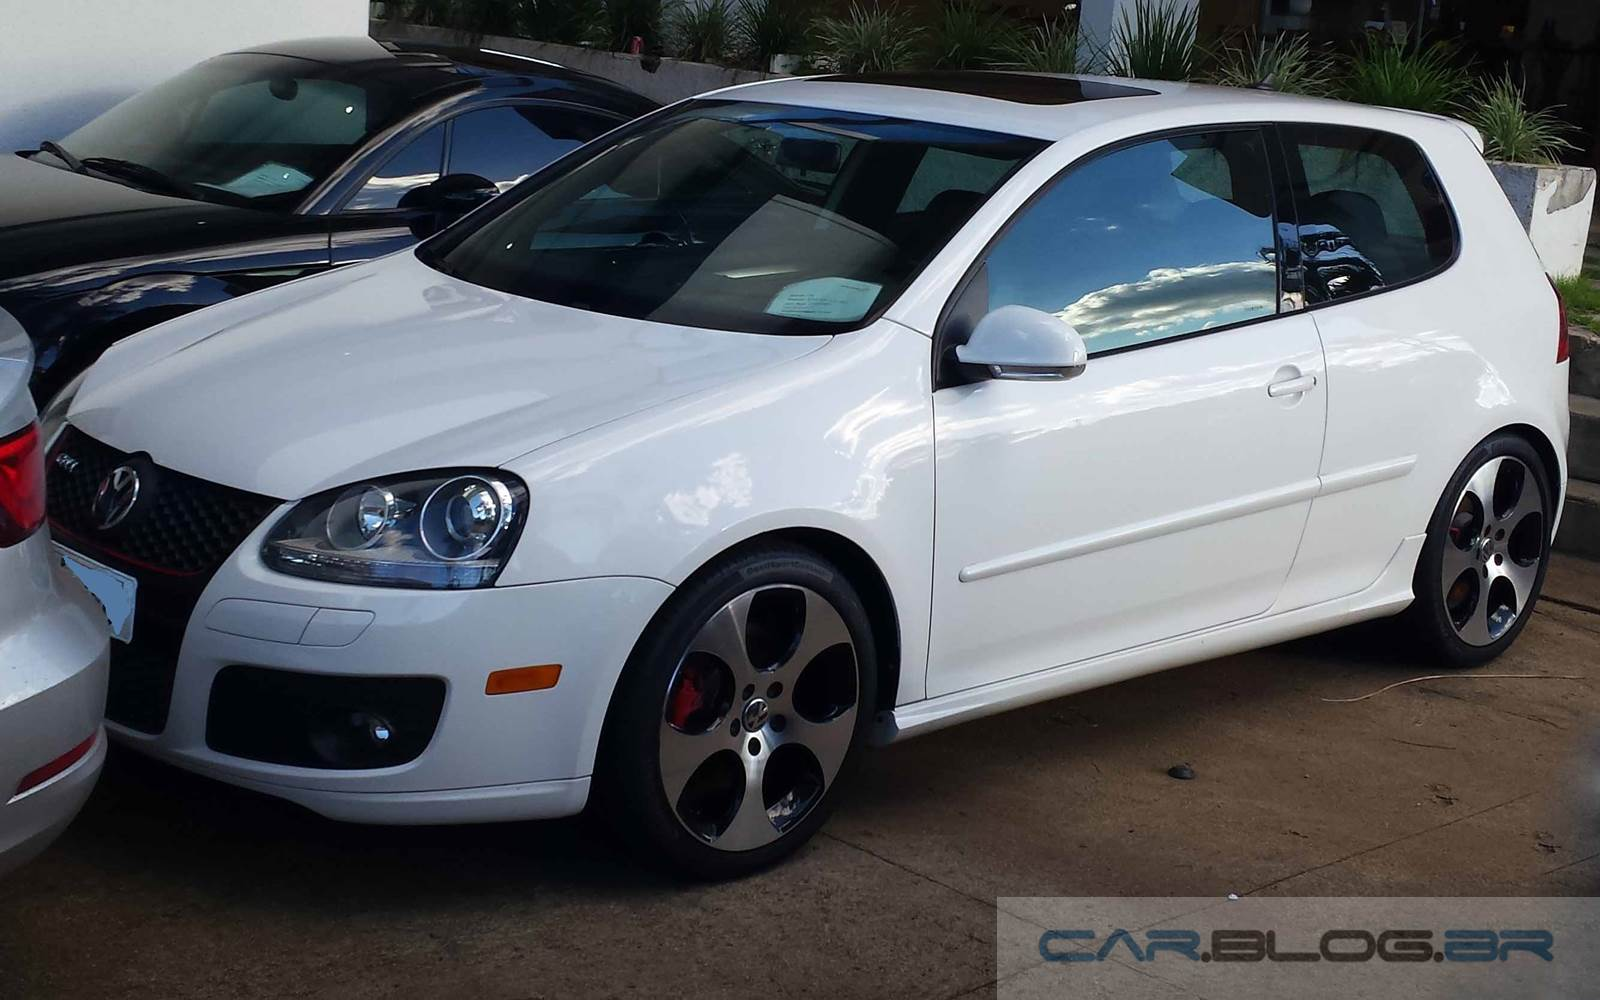 VW Golf GTI MK5 - carroceria mais rígida que a do Jeep Renegade